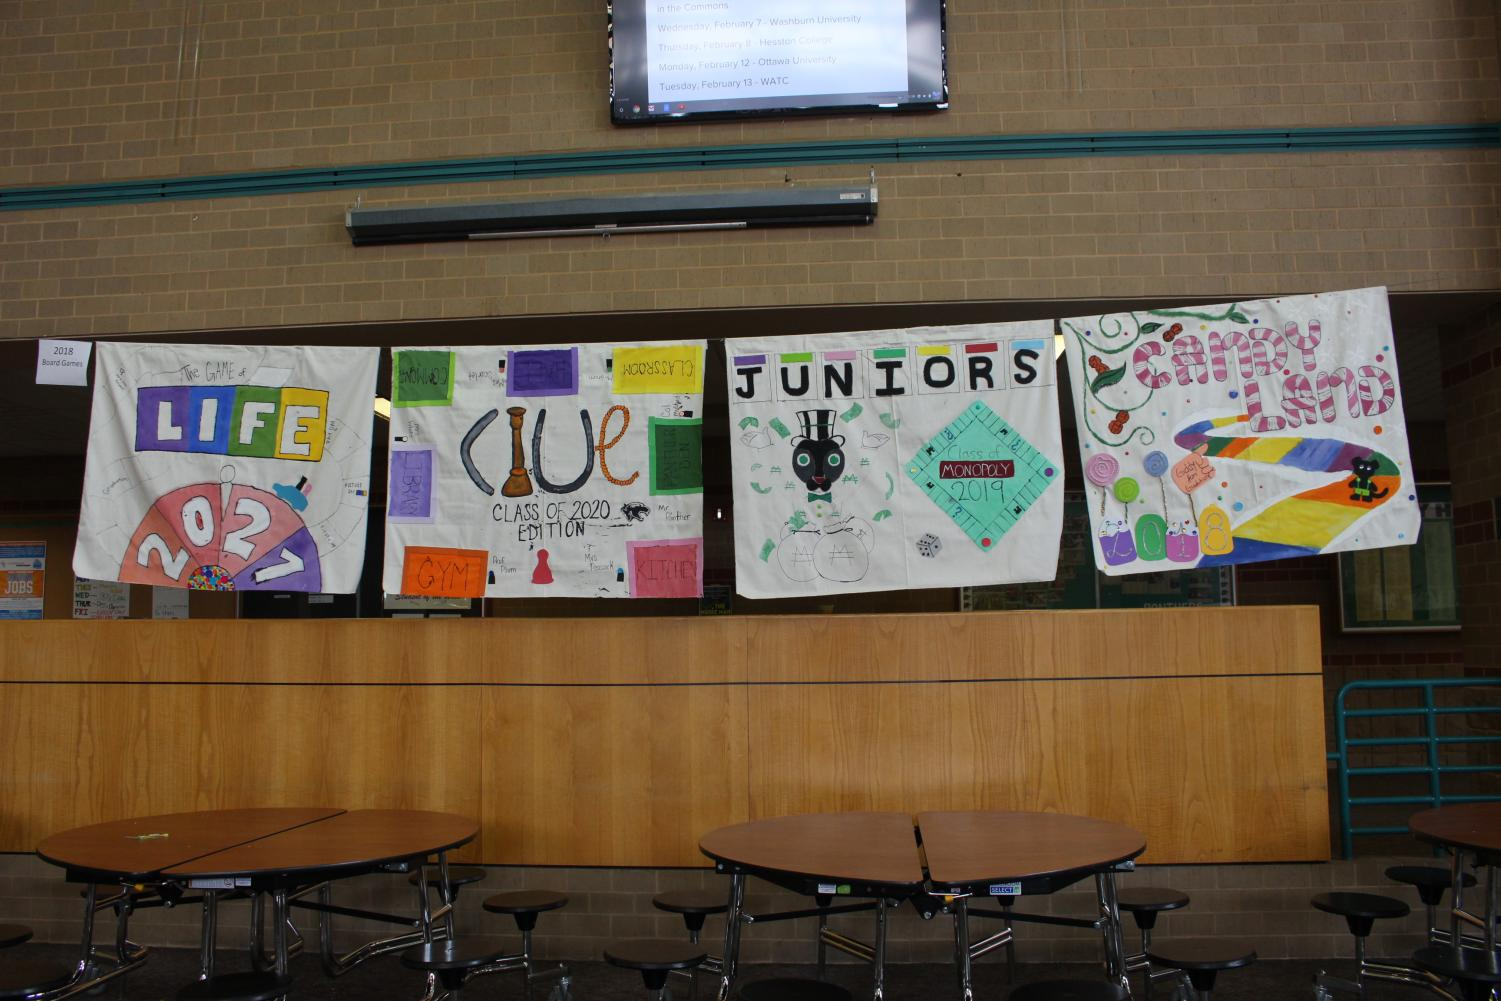 Winter Olympics class posters (photos by Courtney Brown)